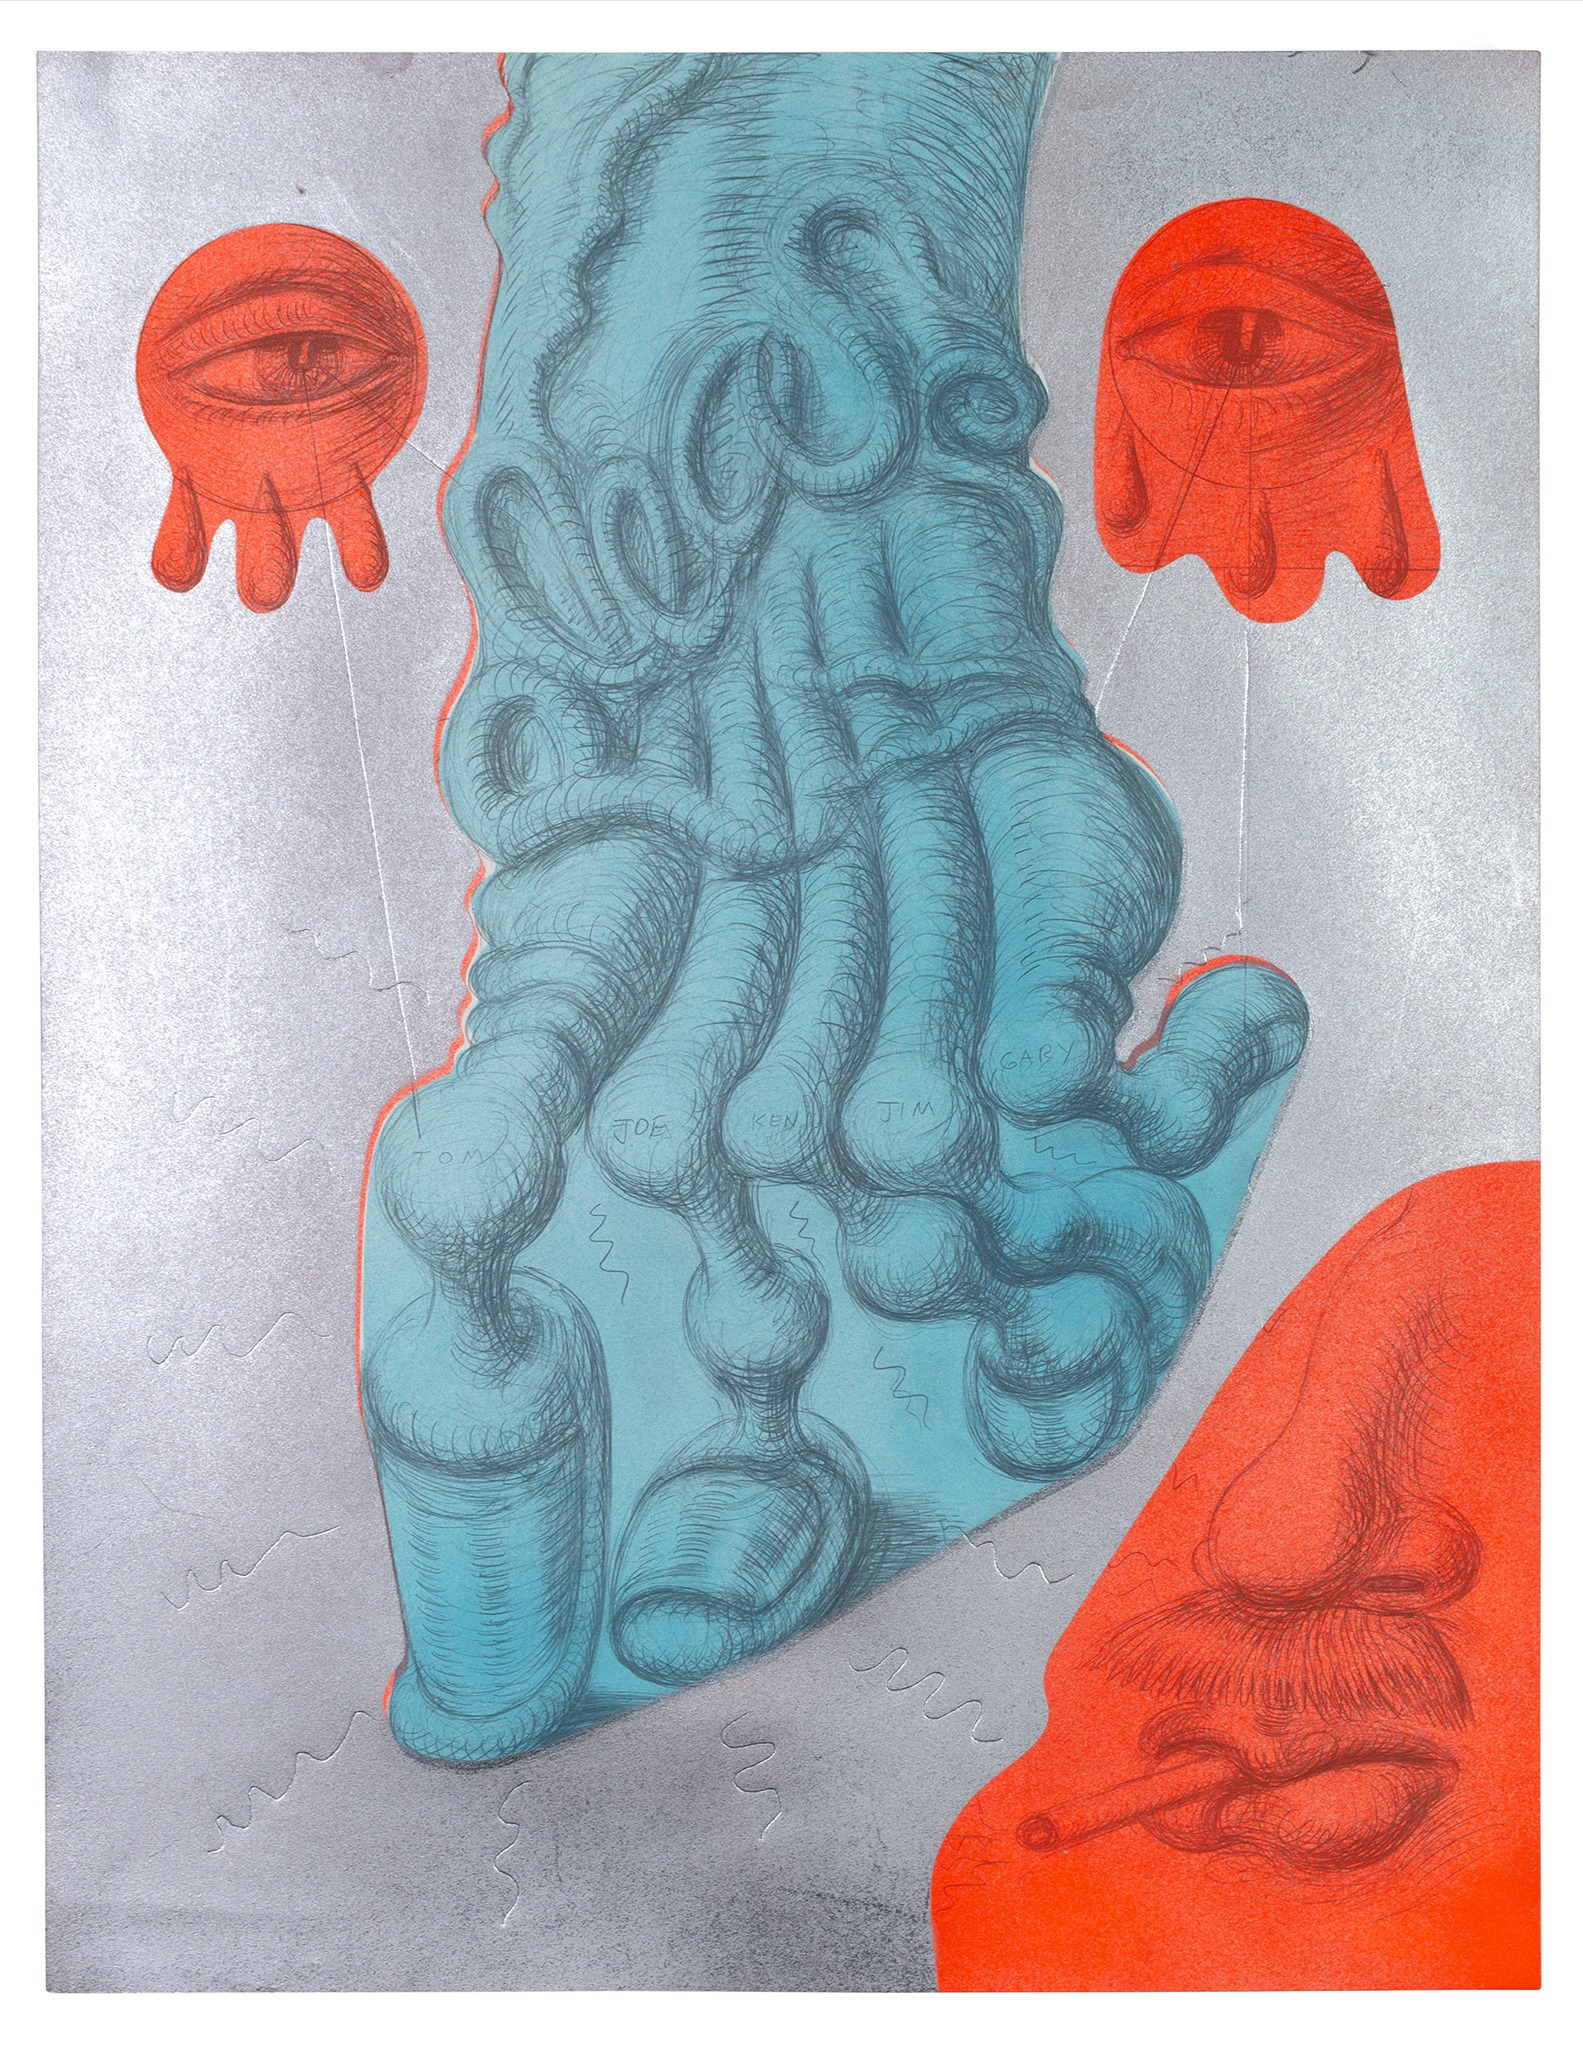 Mike Goodlett, Untitled, 2020, graphite and spray paint on paper, 22 1/2 x 17 1/2 inches